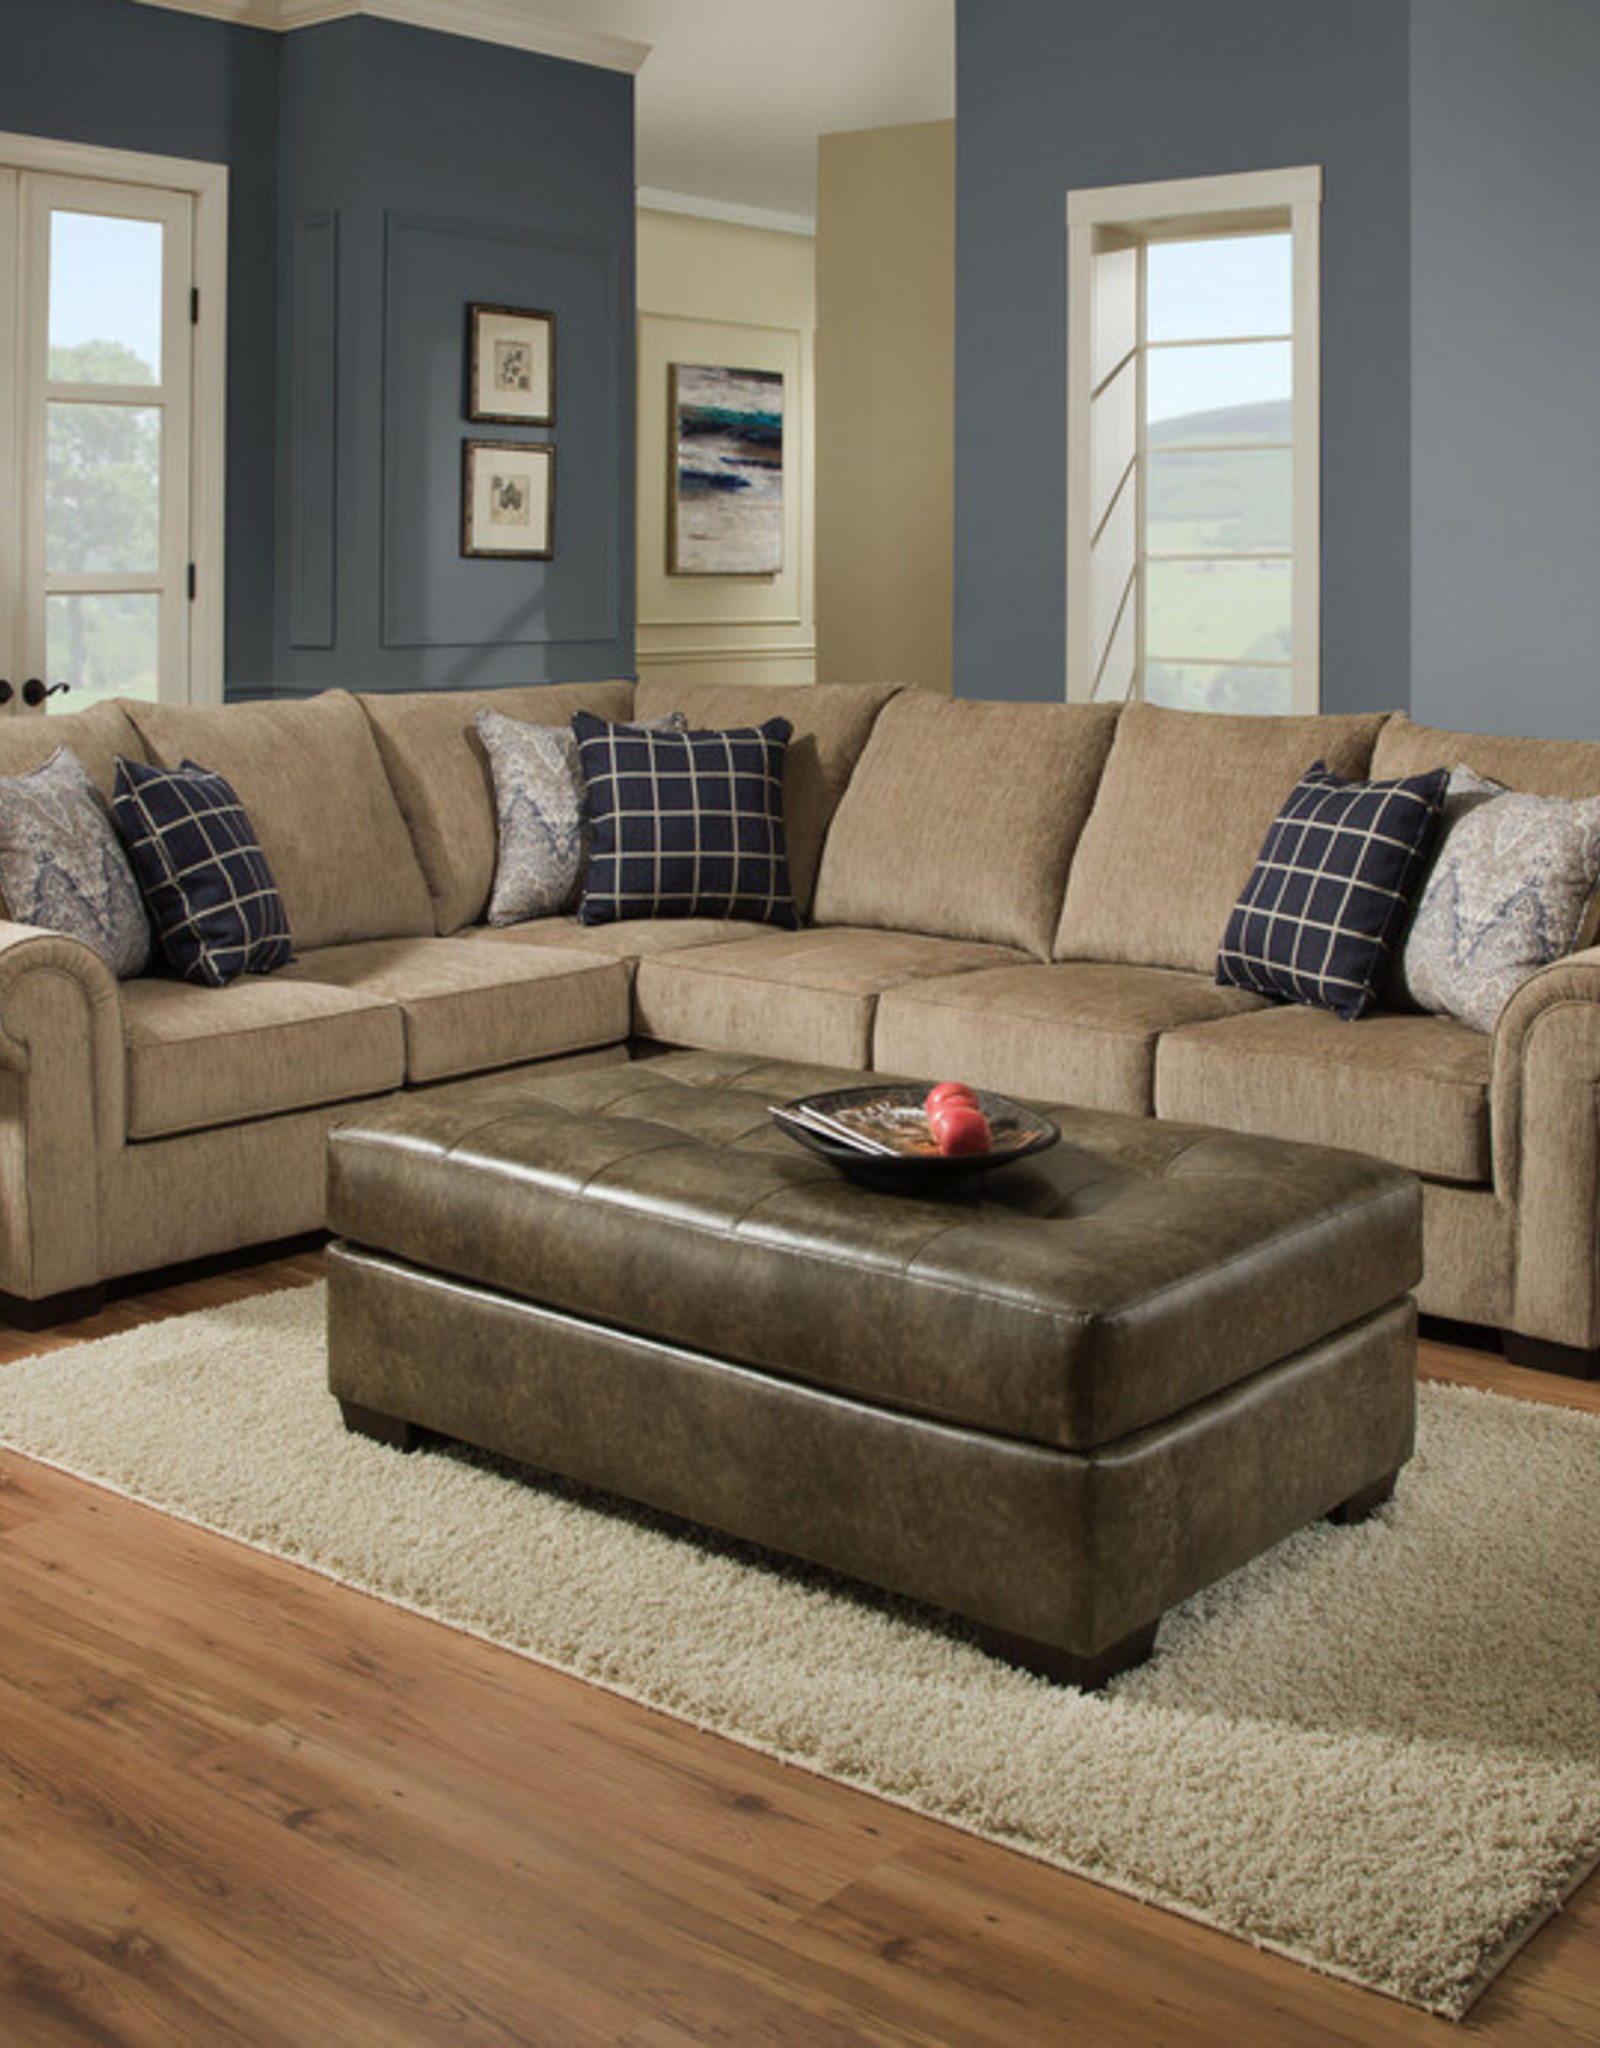 United Gavin Mushroom Sectional w/ Queen Sleeper